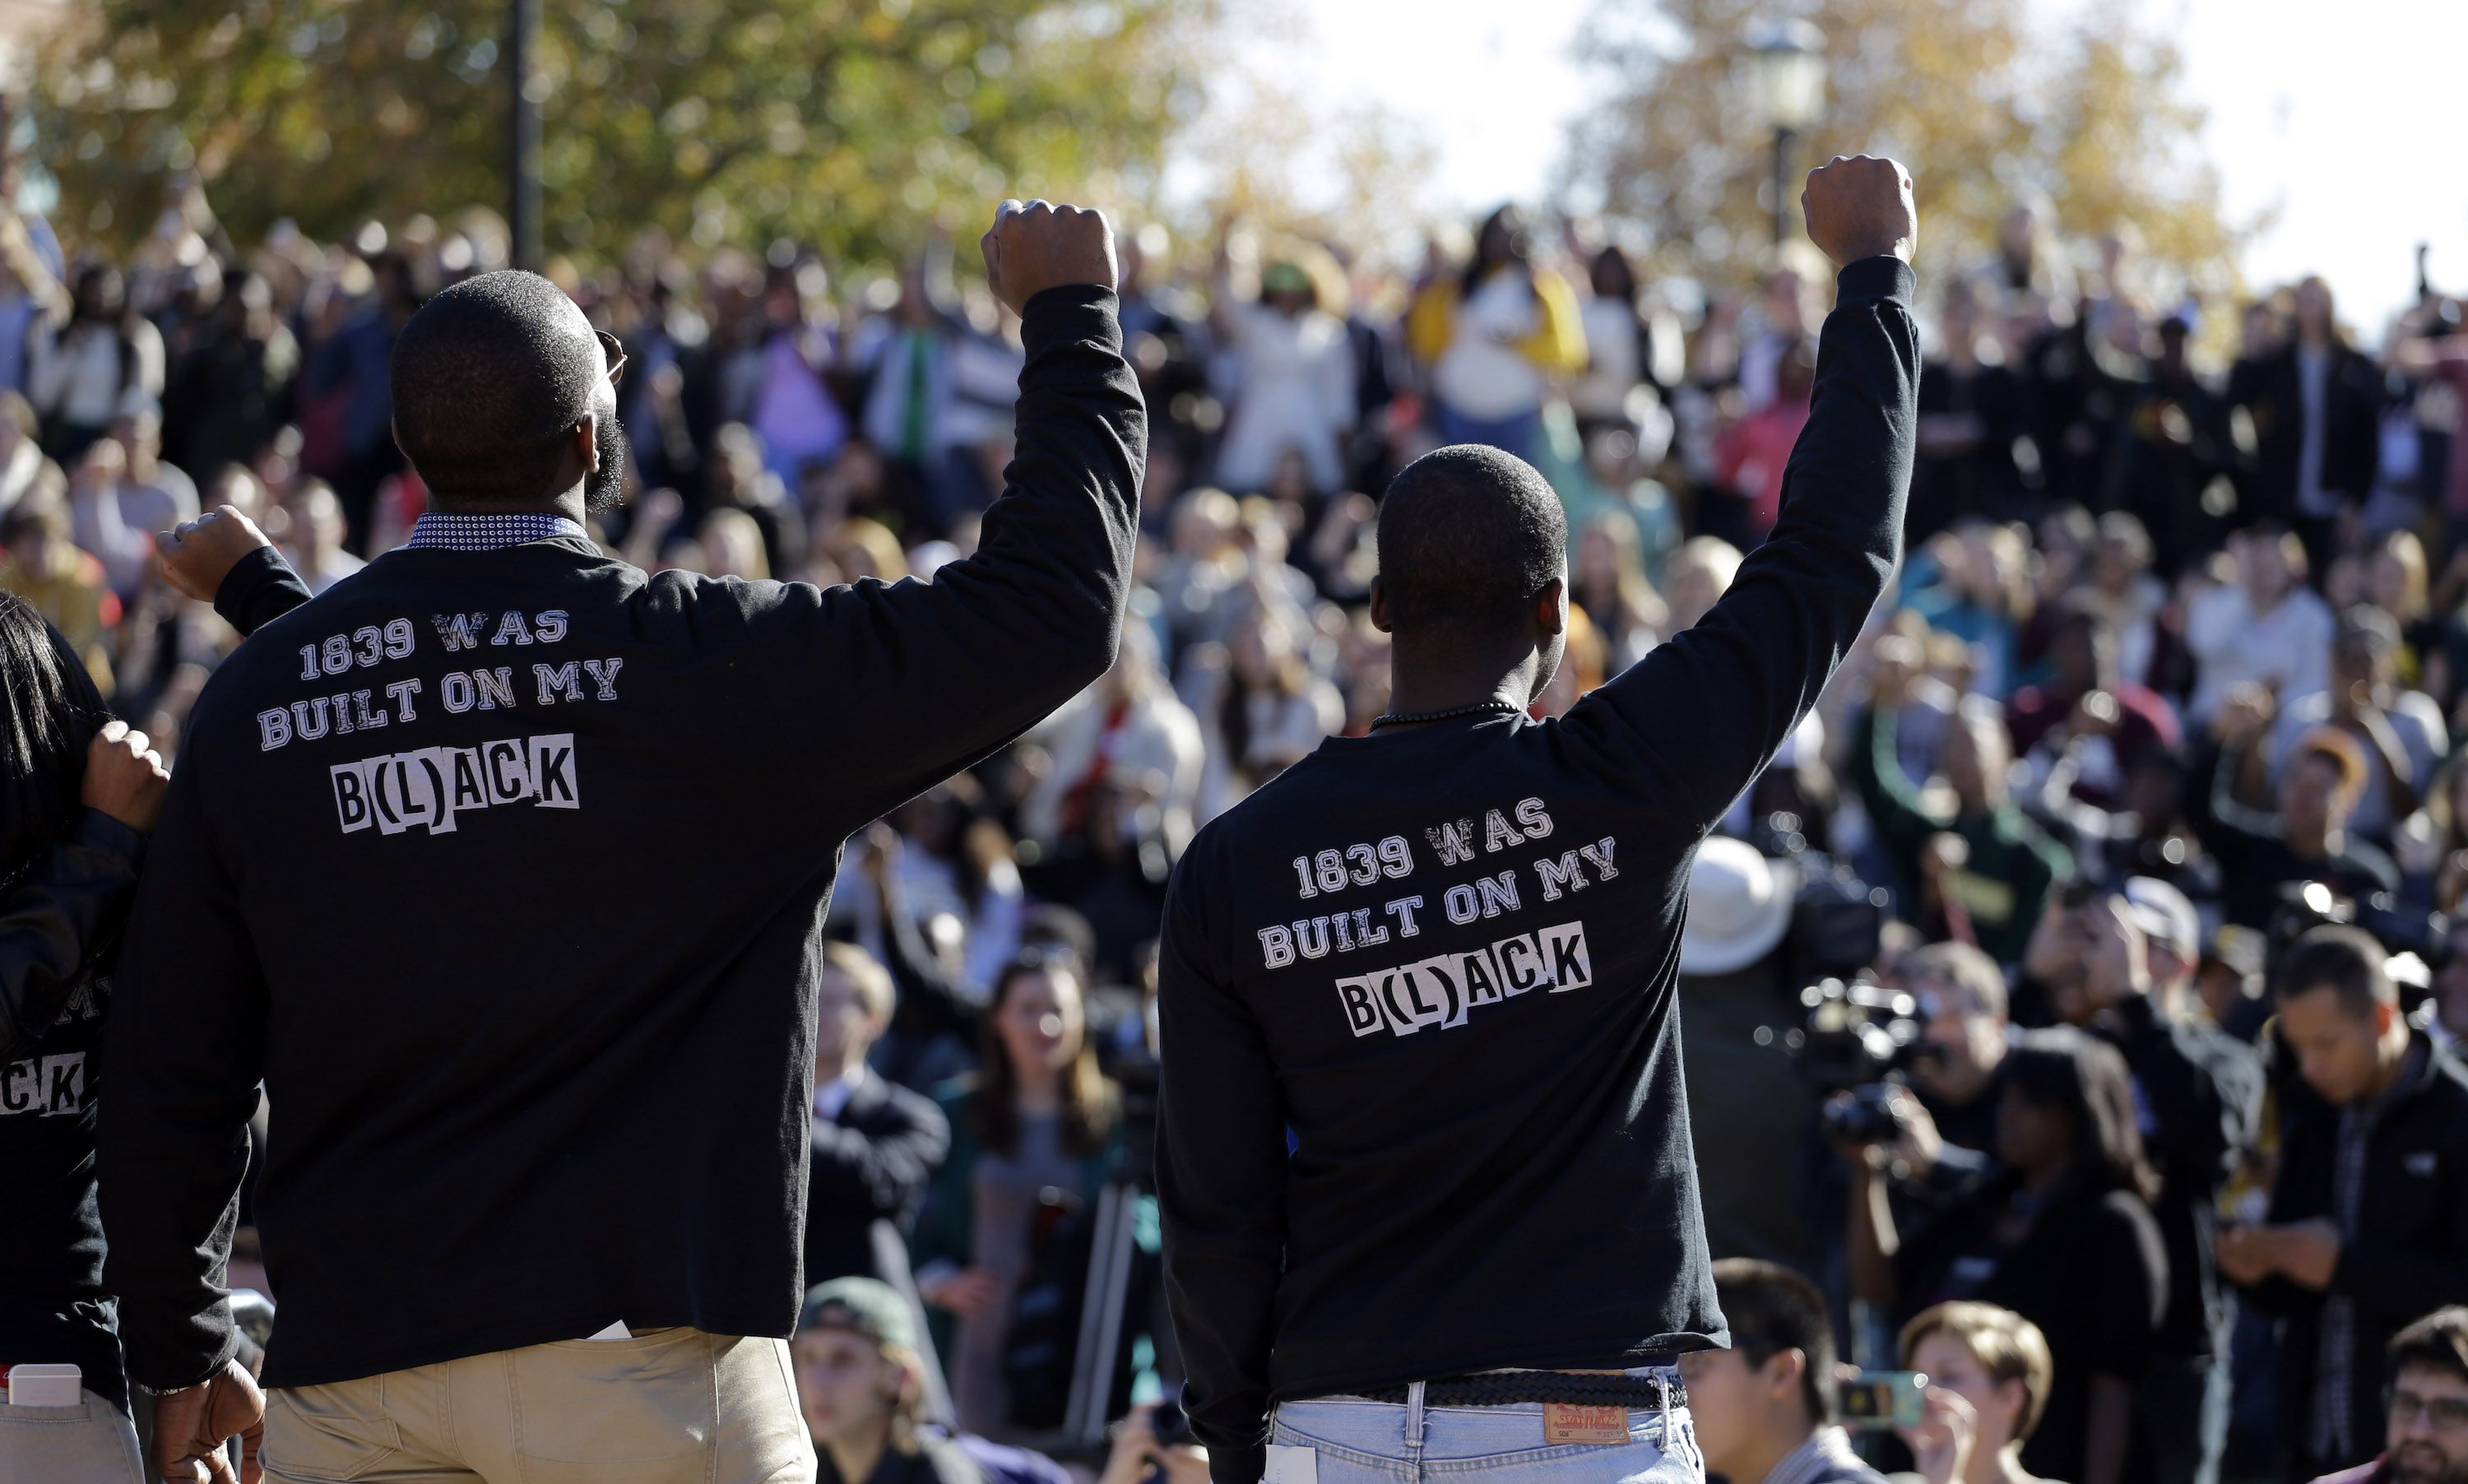 Members of the black student protest group, Concerned Student 1950, raise their arms while addressing a crowd following the announcement University of Missouri System President Tim Wolfe would resign Monday, Nov. 9, 2015, at the University of Missouri in Columbia, Mo. Wolfe resigned Monday with the football team and others on campus in open revolt over his handling of racial tensions at the school. (AP Photo/Jeff Roberson)